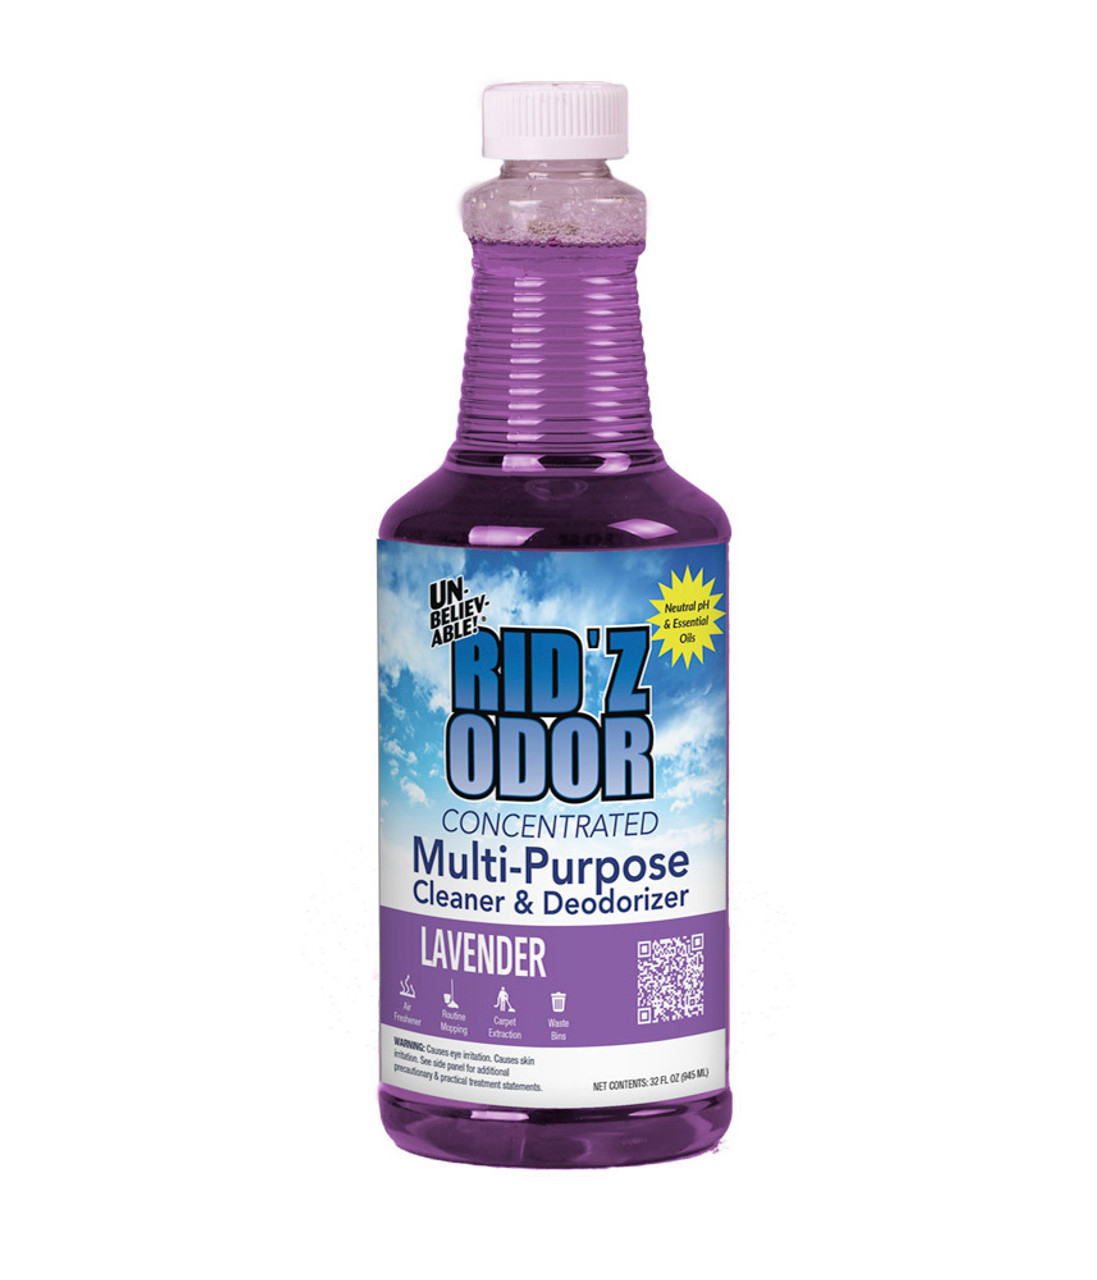 Rid'Z Deodorant and Cleaner encapsulates odor molecules to eliminate odors, not cover them up!